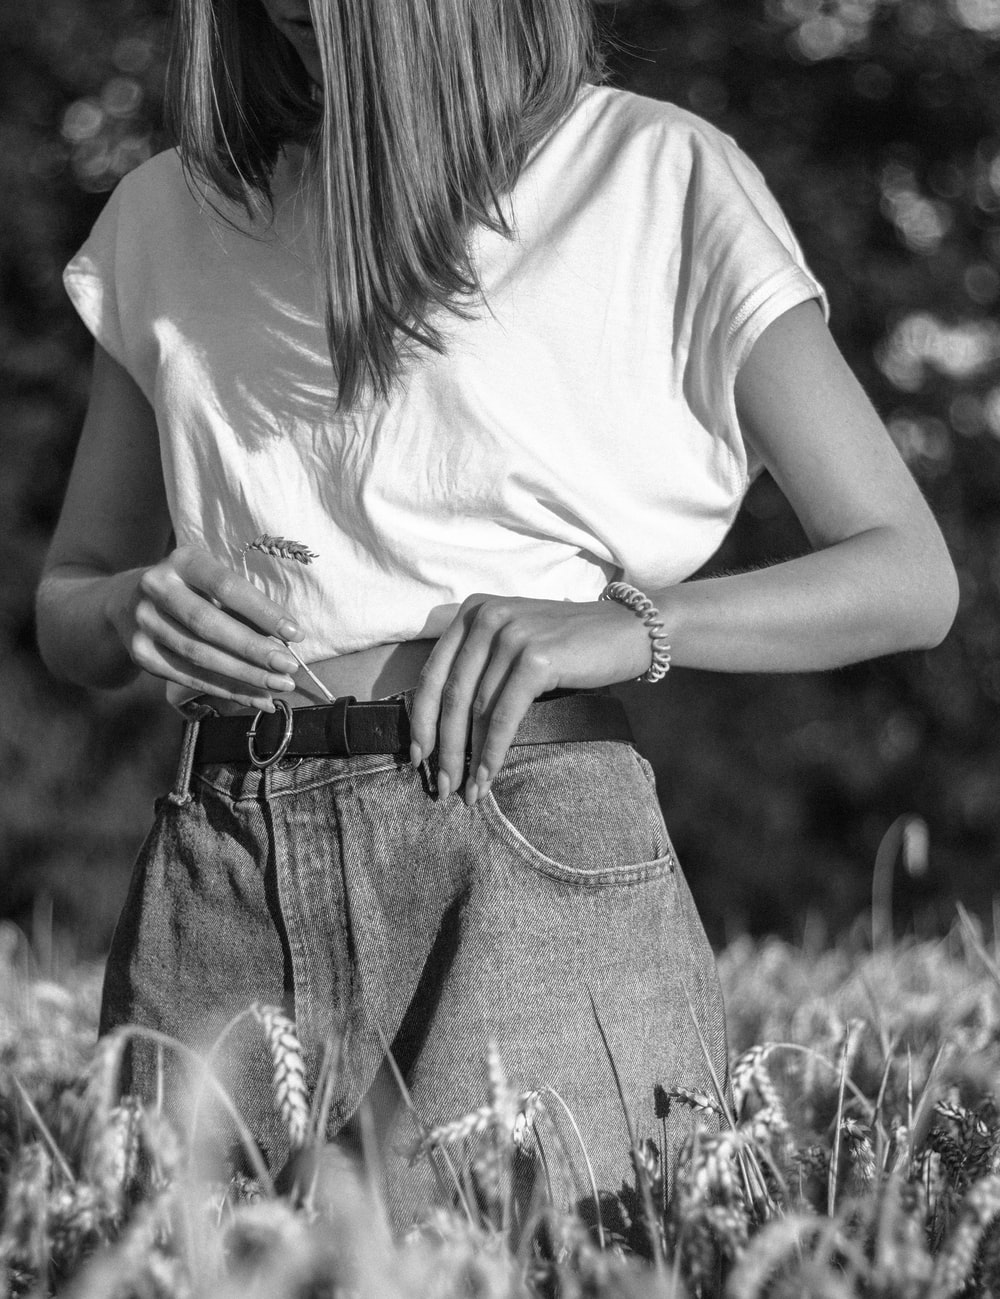 woman in white t-shirt and blue denim daisy dukes standing on grass field